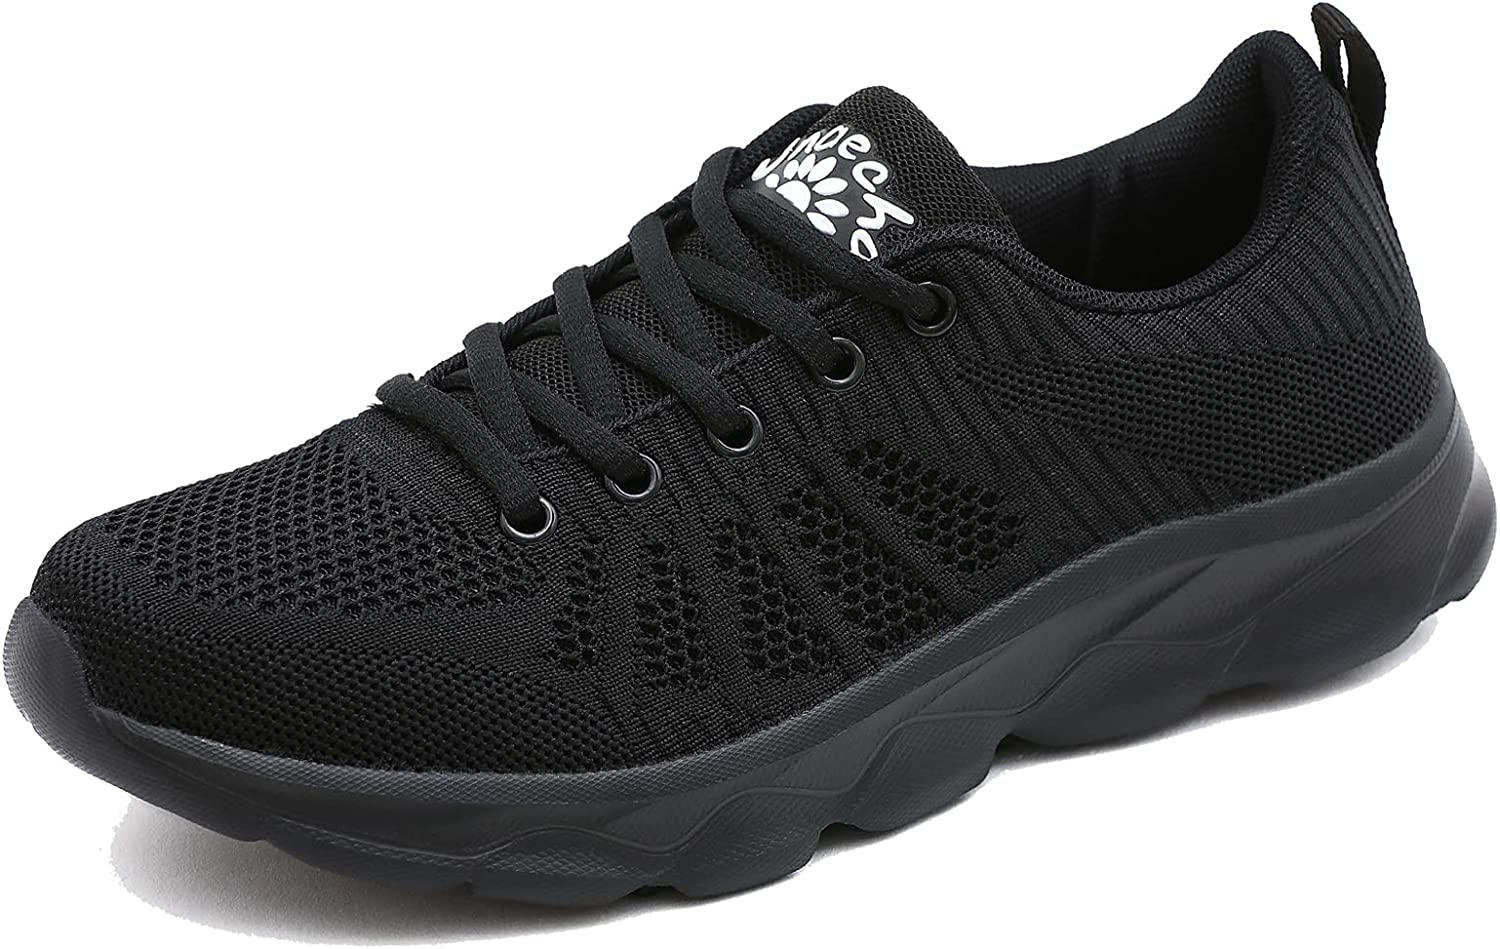 Unaecha Women's Athletic Walking Shoes Mesh Breathable Running S